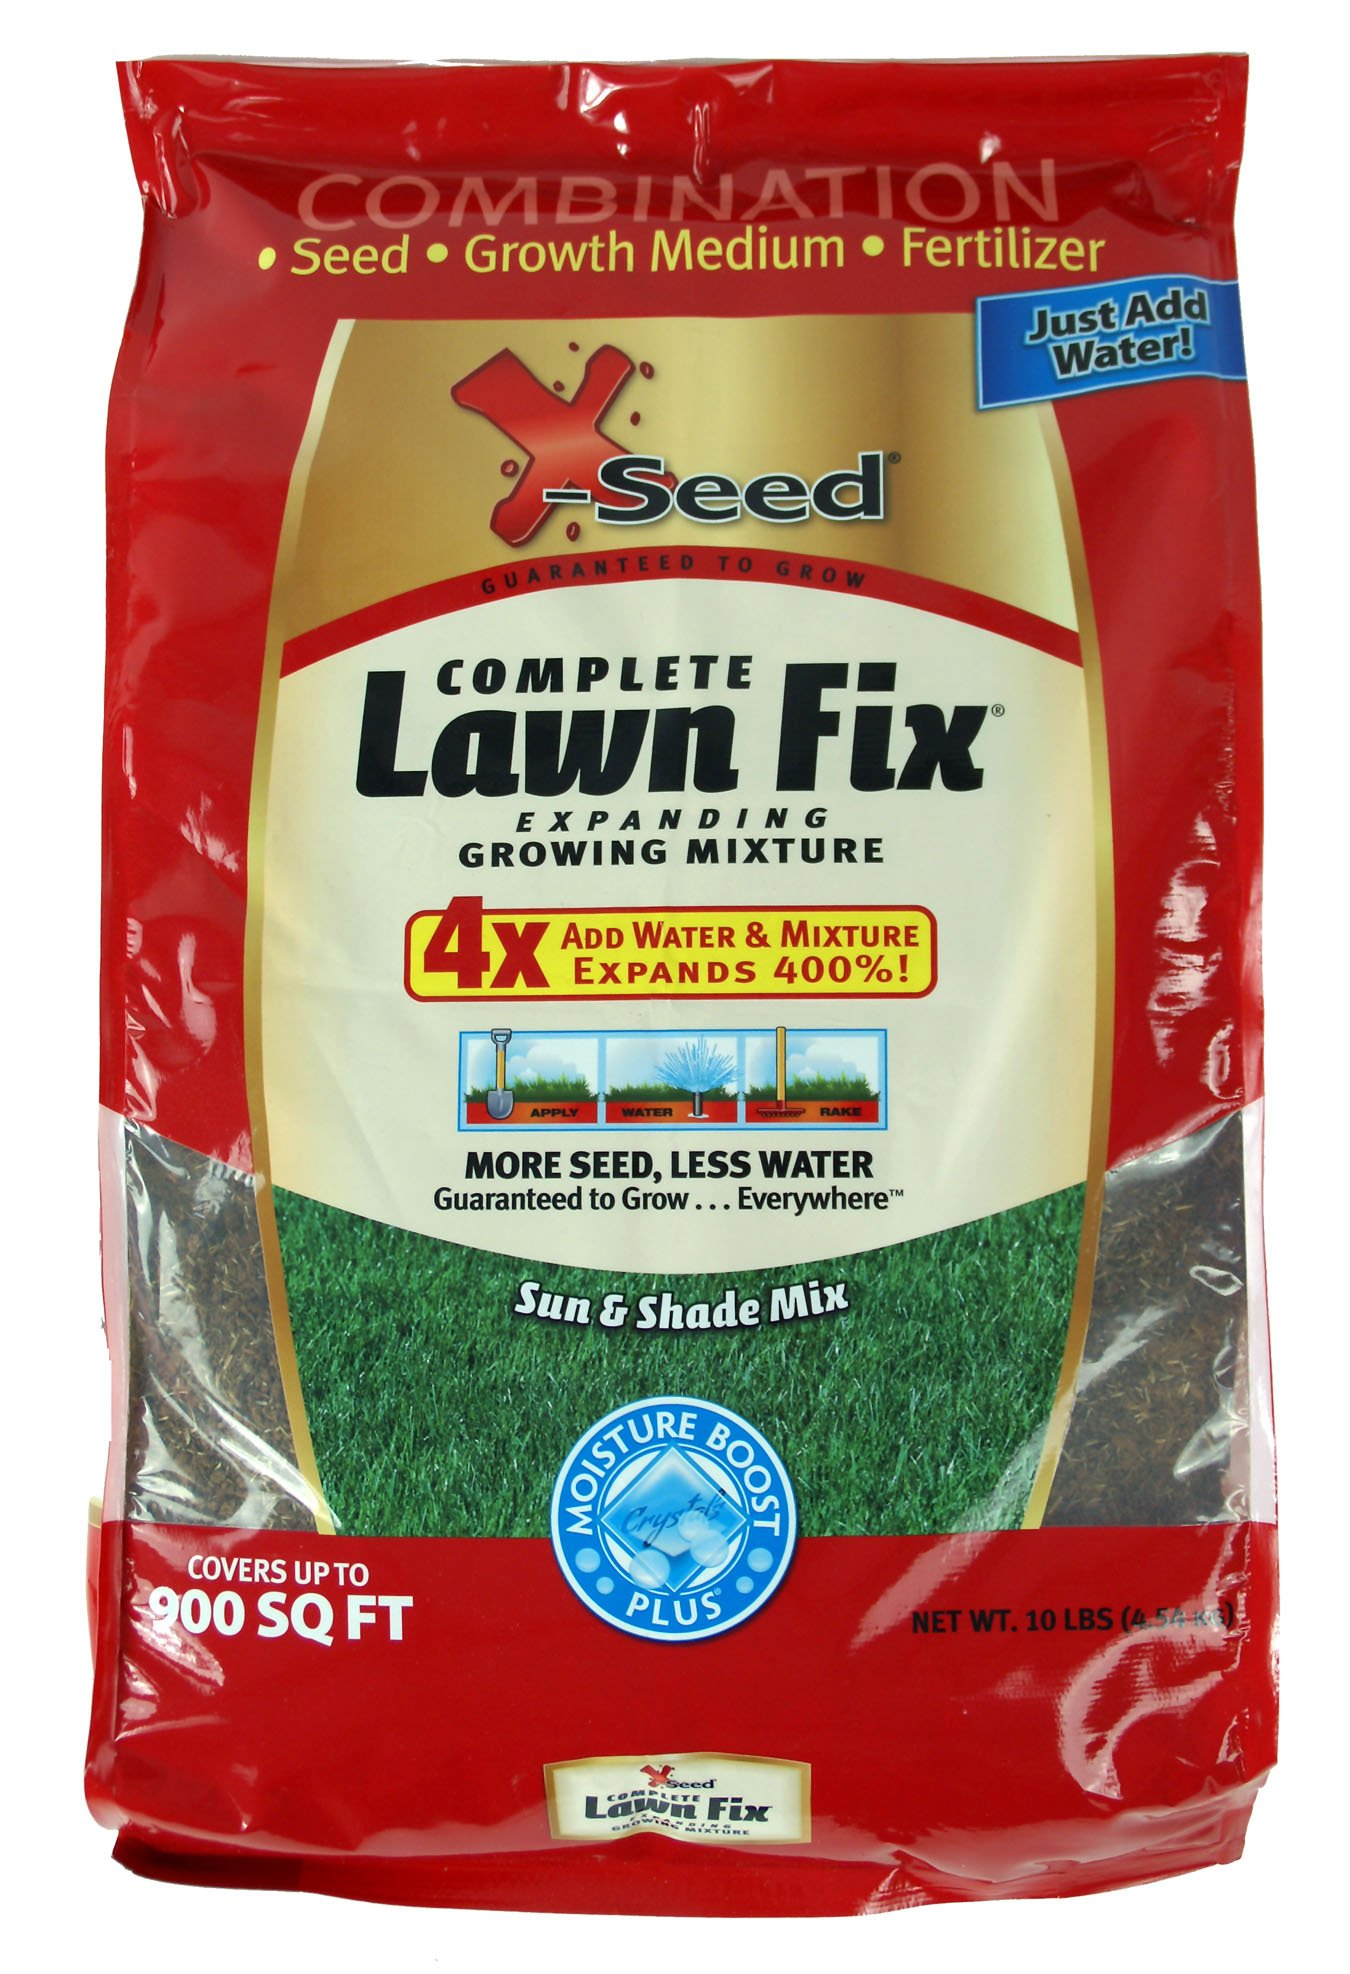 X-Seed Complete Lawn Fix Lawn Repair Sun to Shade Mix, 10-Pound